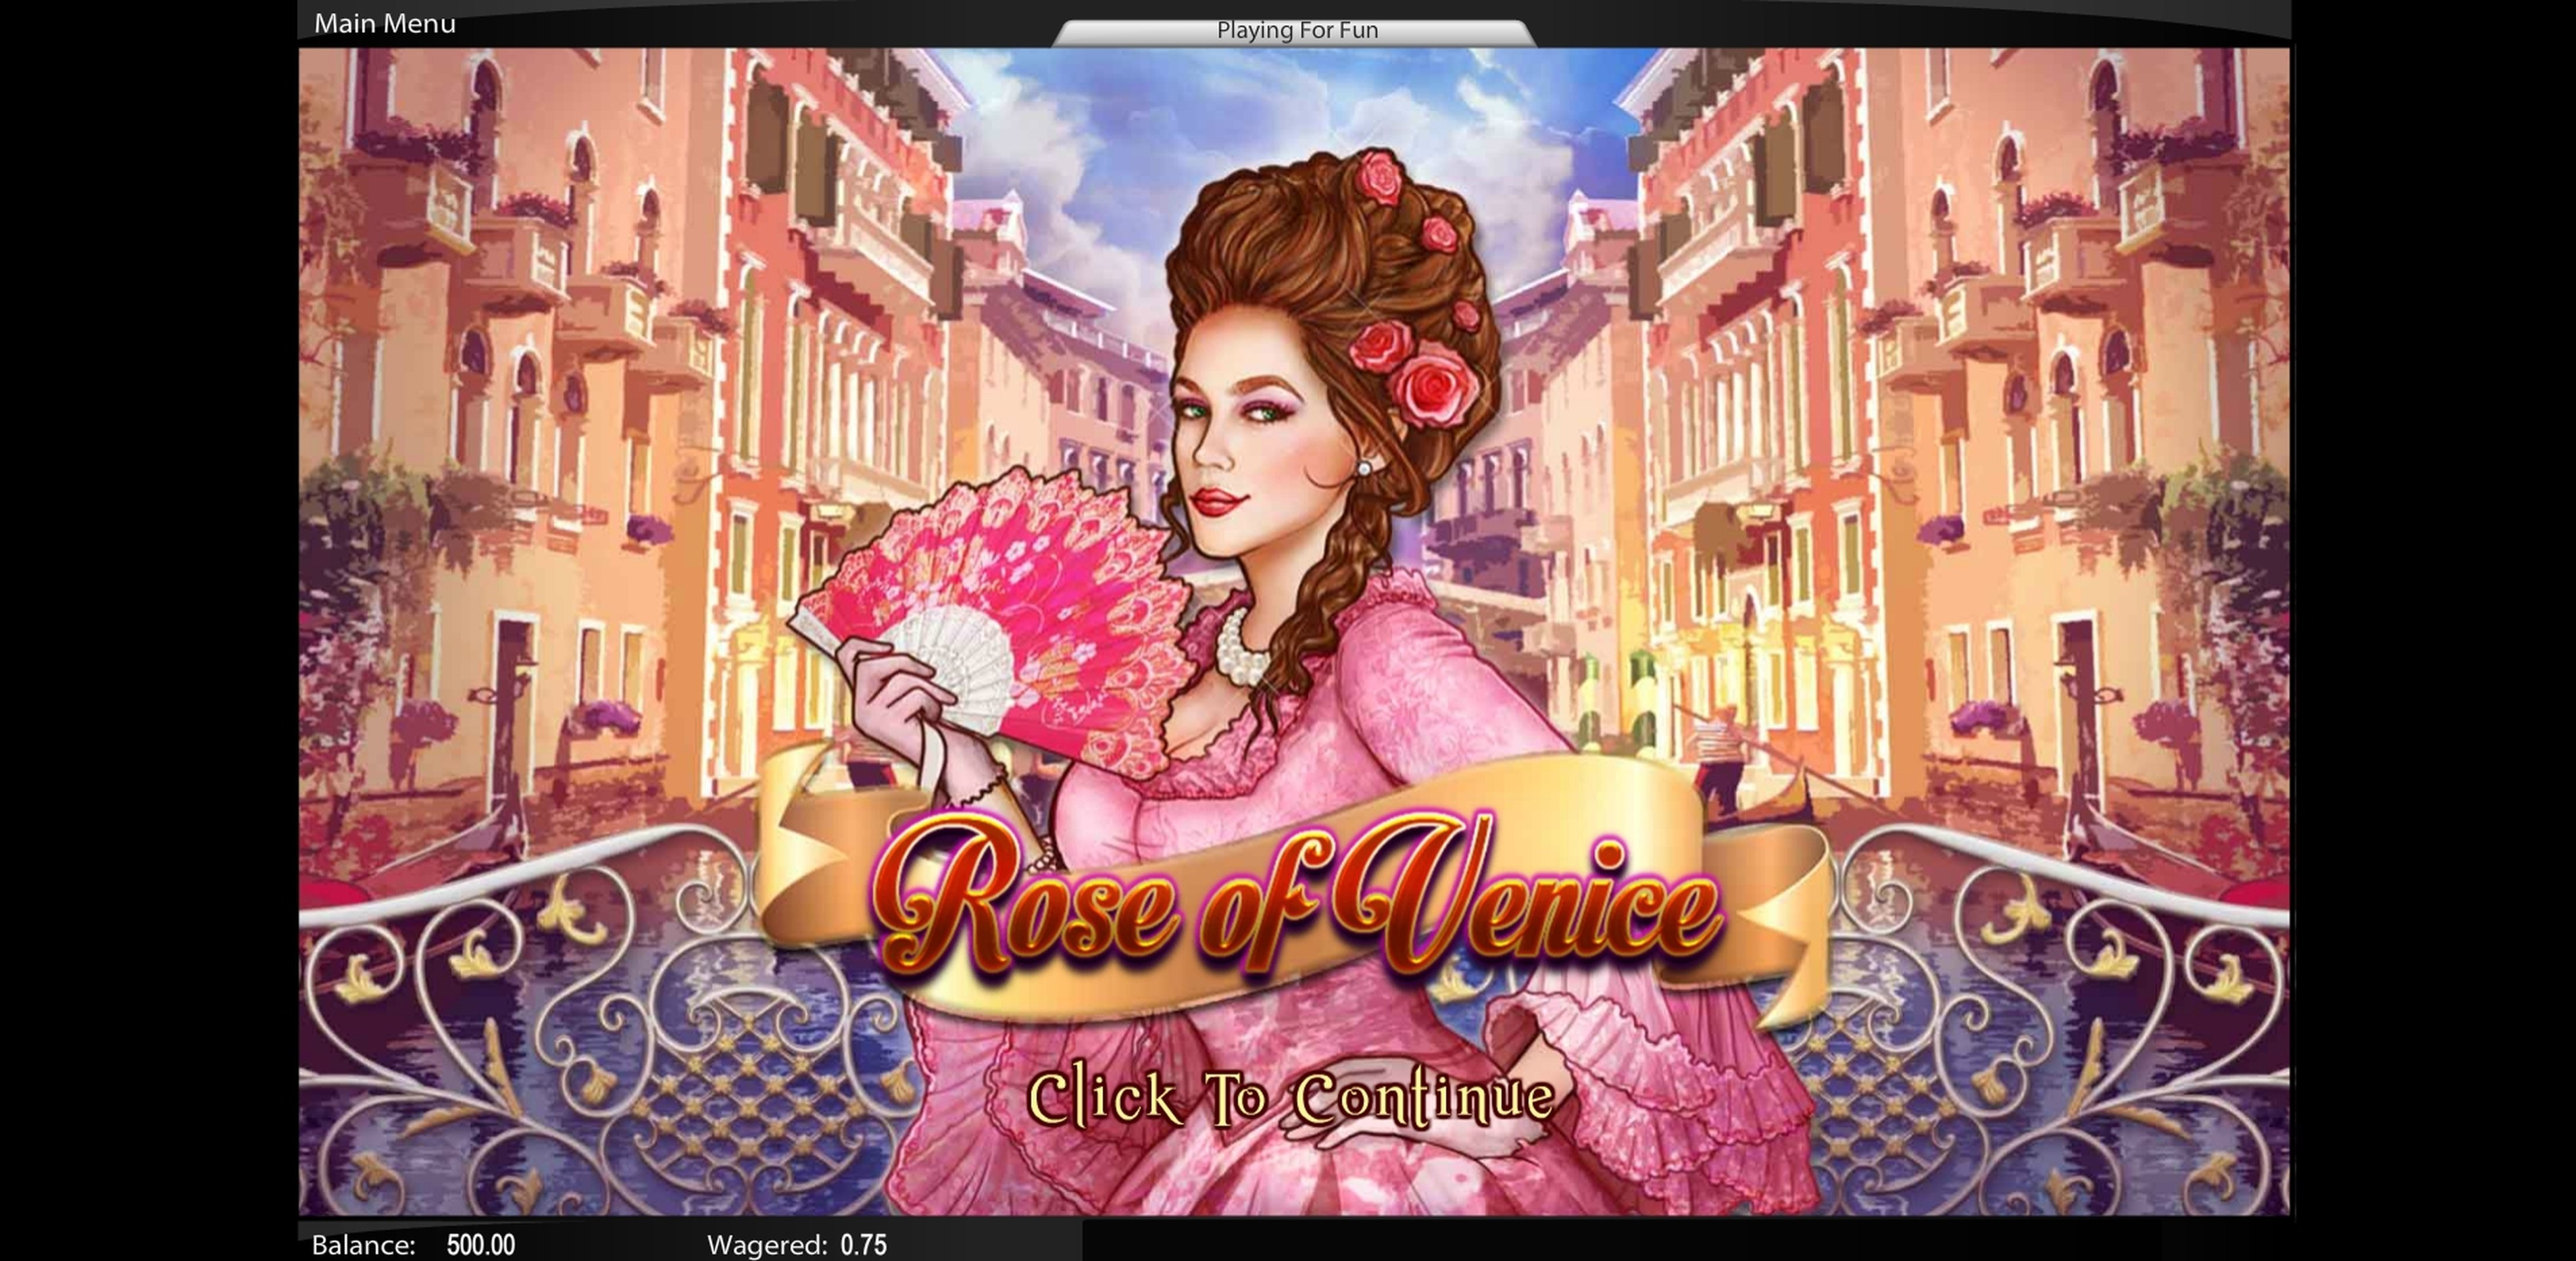 Play Rose of Venice Free Casino Slot Game by Top Trend Gaming